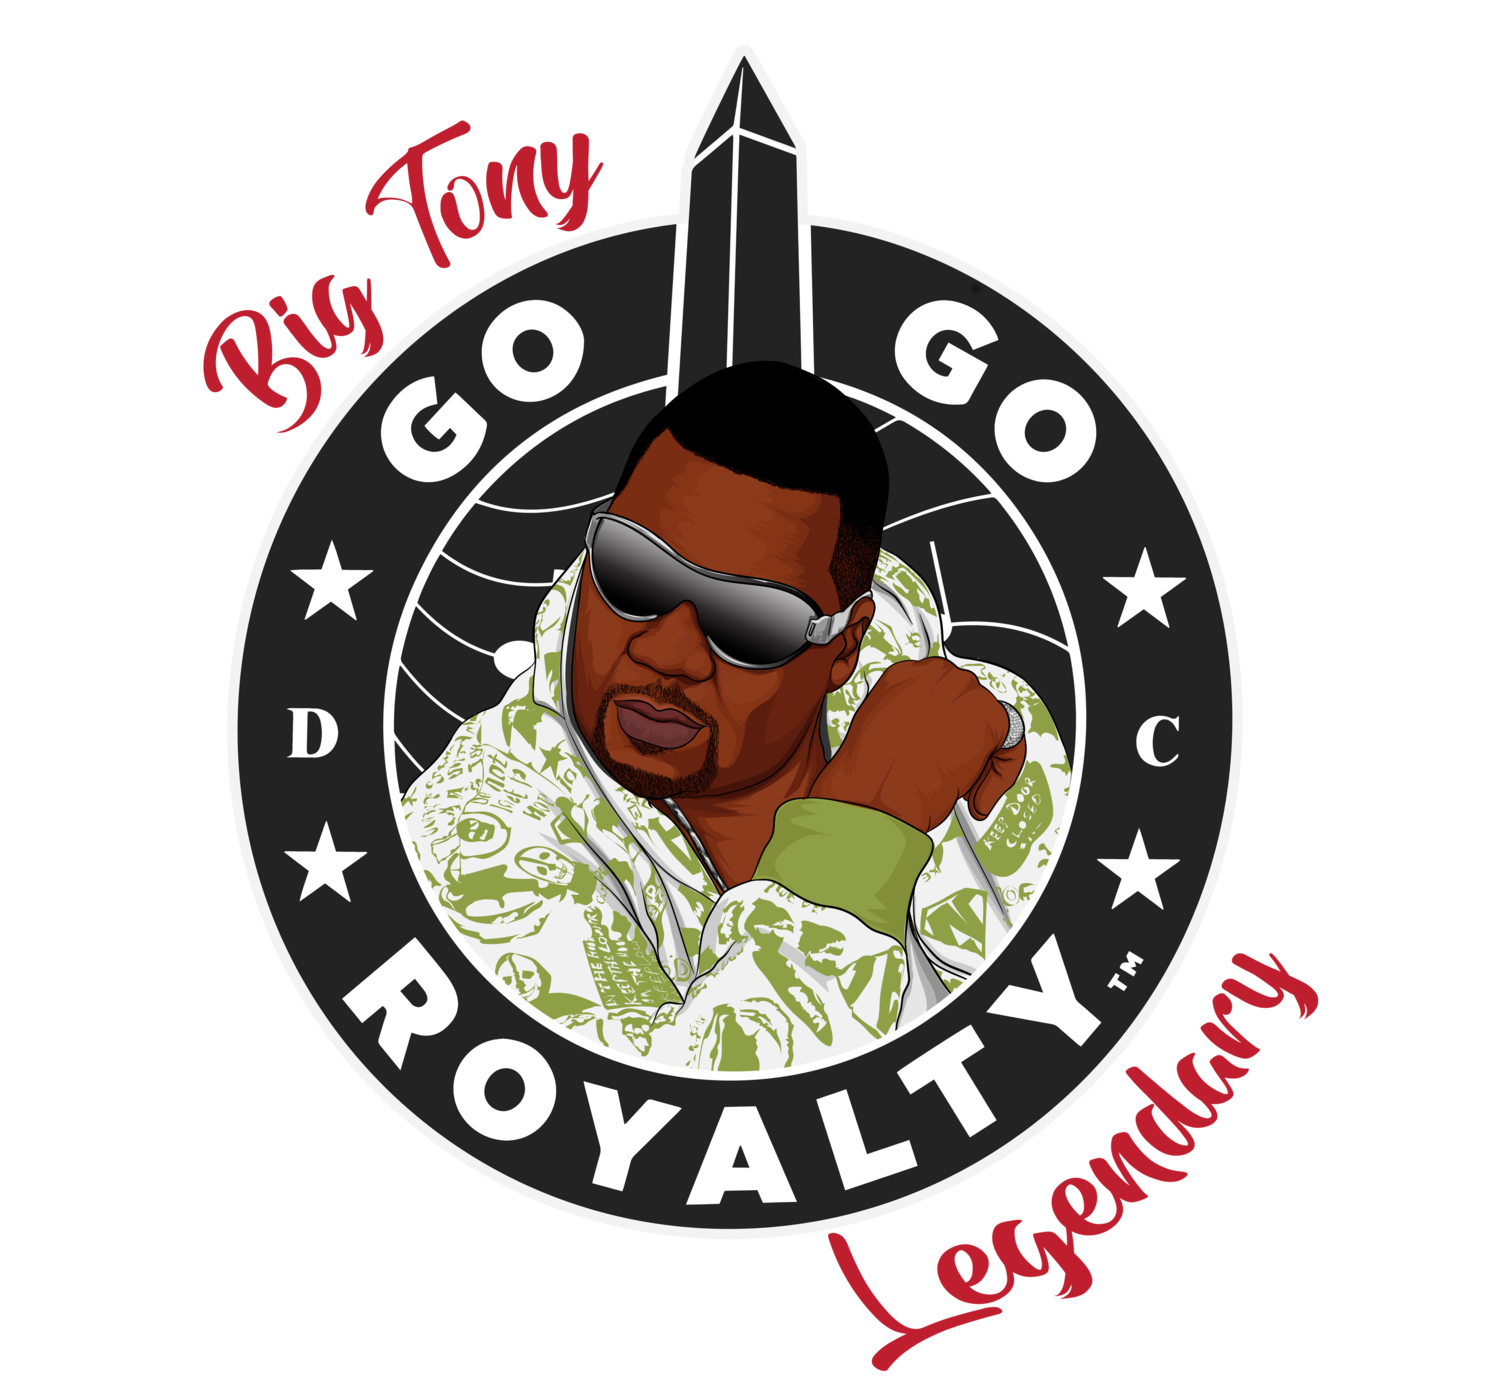 "Go-Go Royalty""Big Tony"" of Trouble Funk  Legendary 2020 Collection Series Short Sleeve T-shirts (Choose Your Color)"